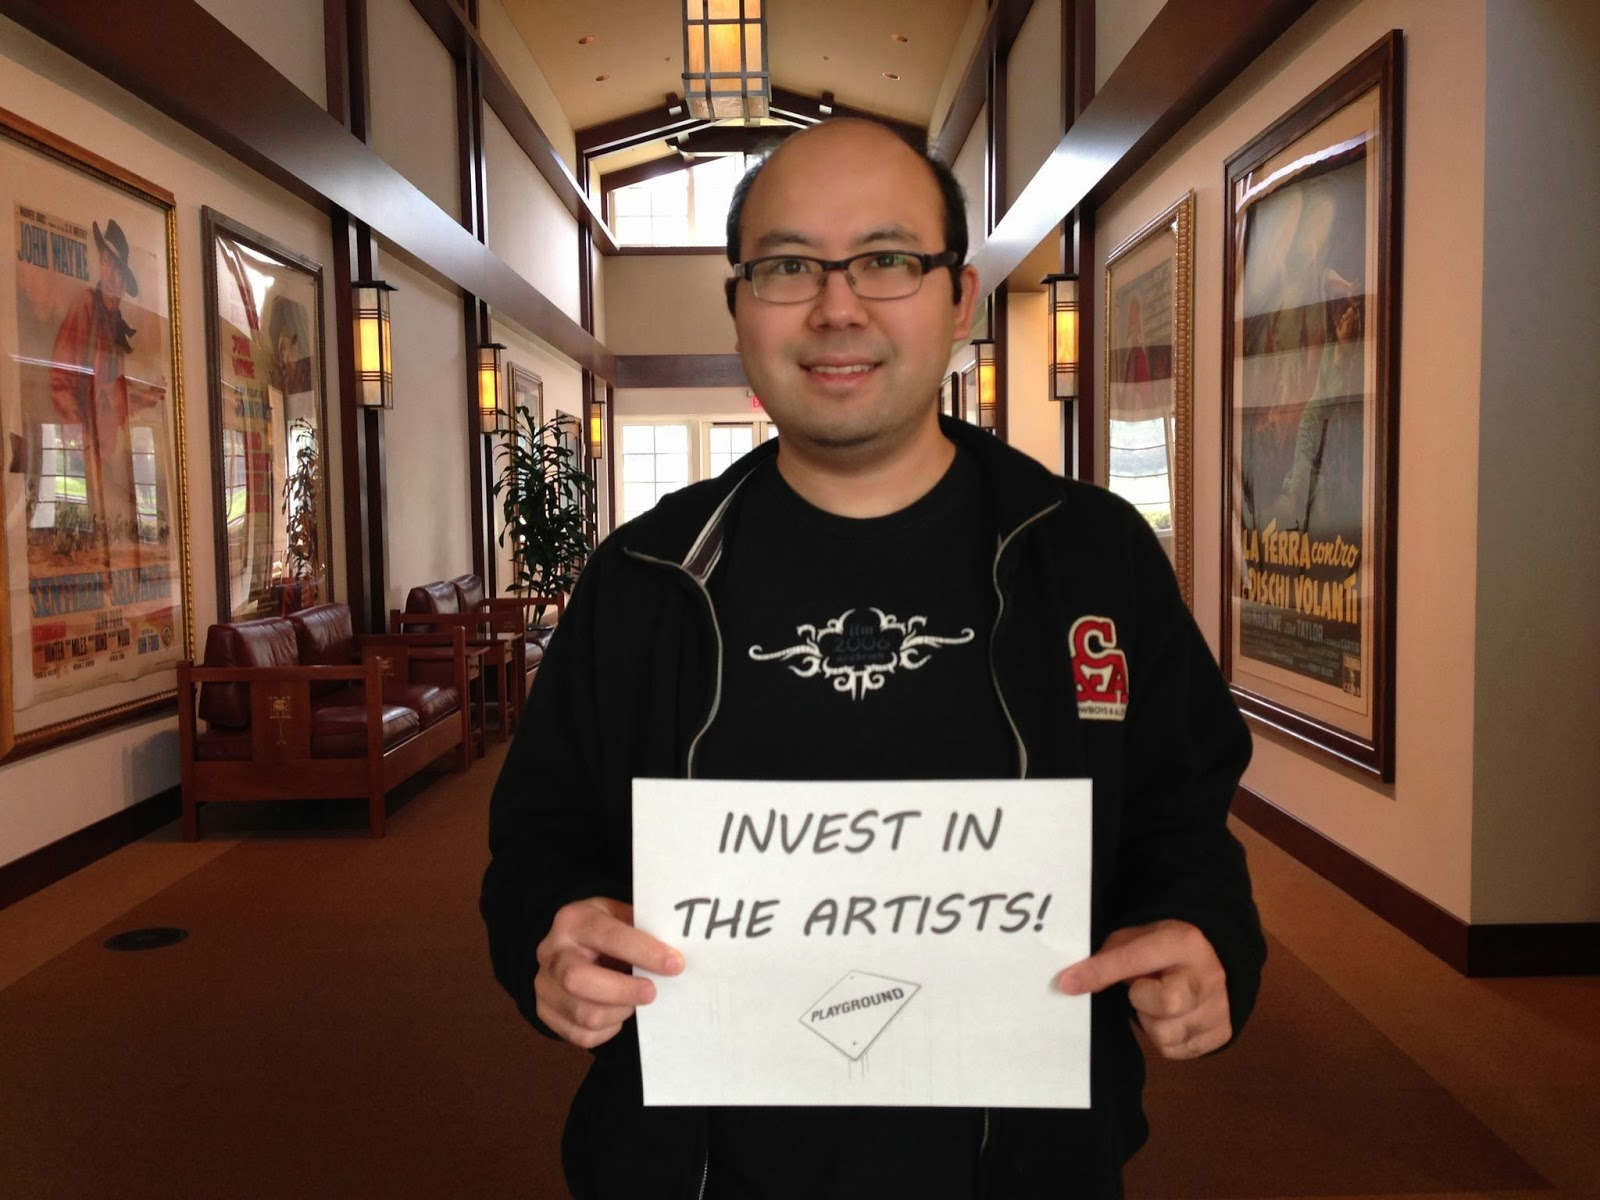 https://www.causes.com/campaigns/67350-invest-in-the-artists/